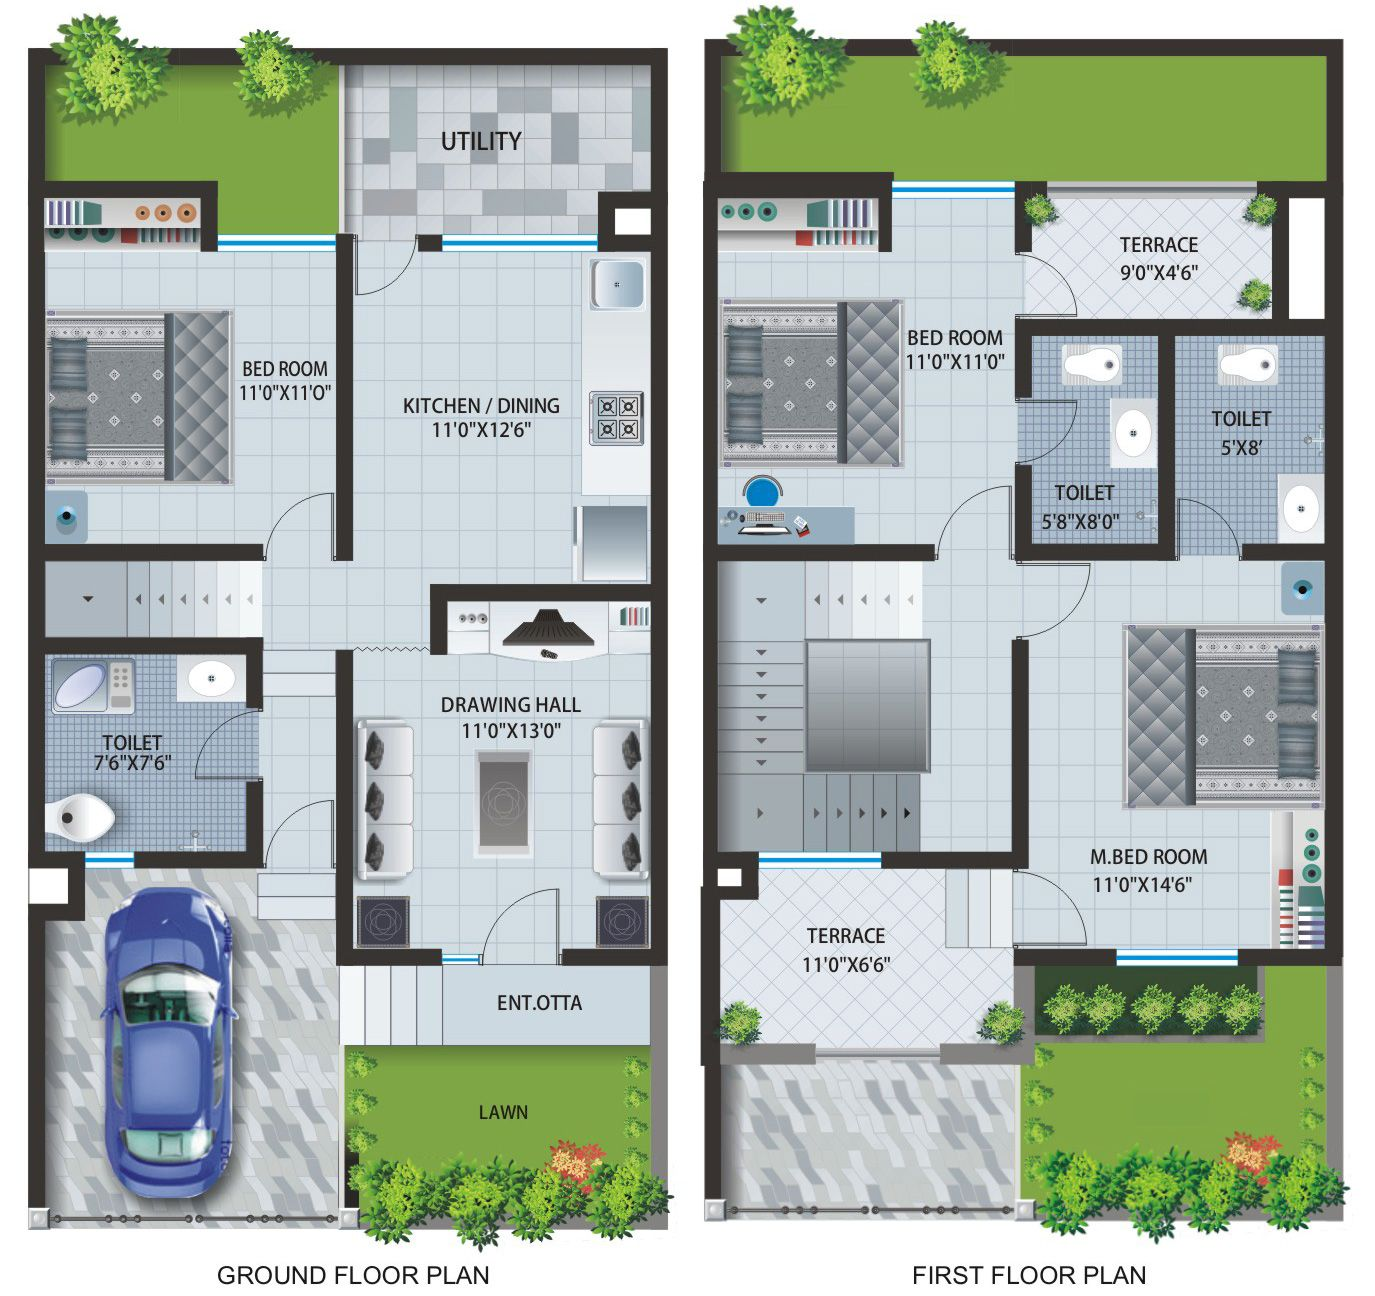 Floor Plans Of Apartments Row Houses At Caroline Baner Plans Pinterest Apartments